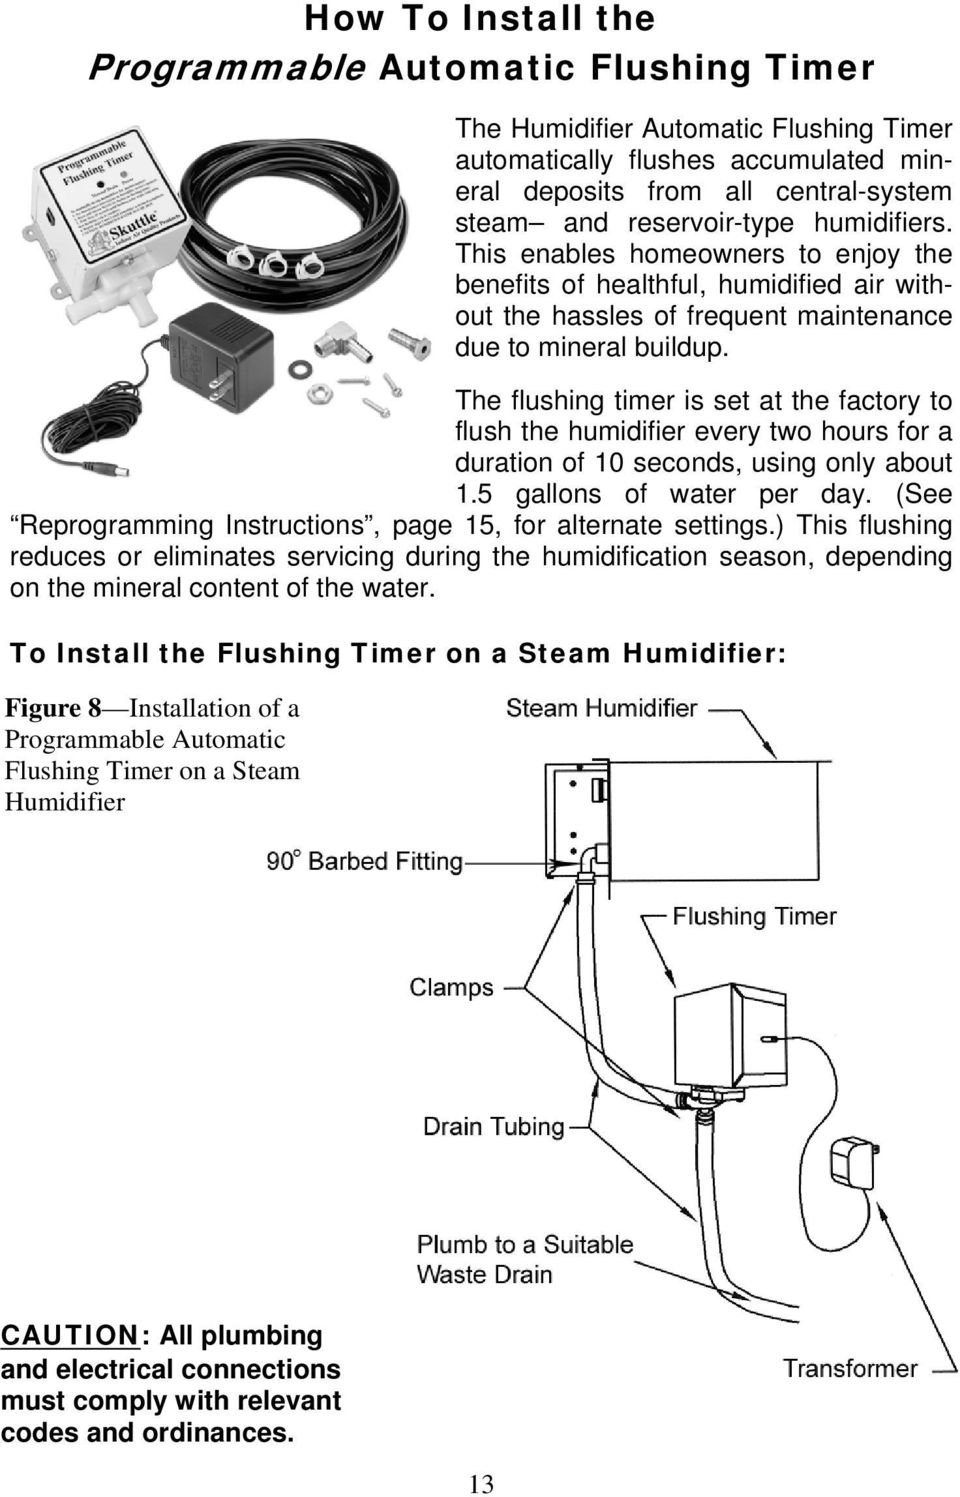 hight resolution of the flushing timer is set at the factory to flush the humidifier every two hours for